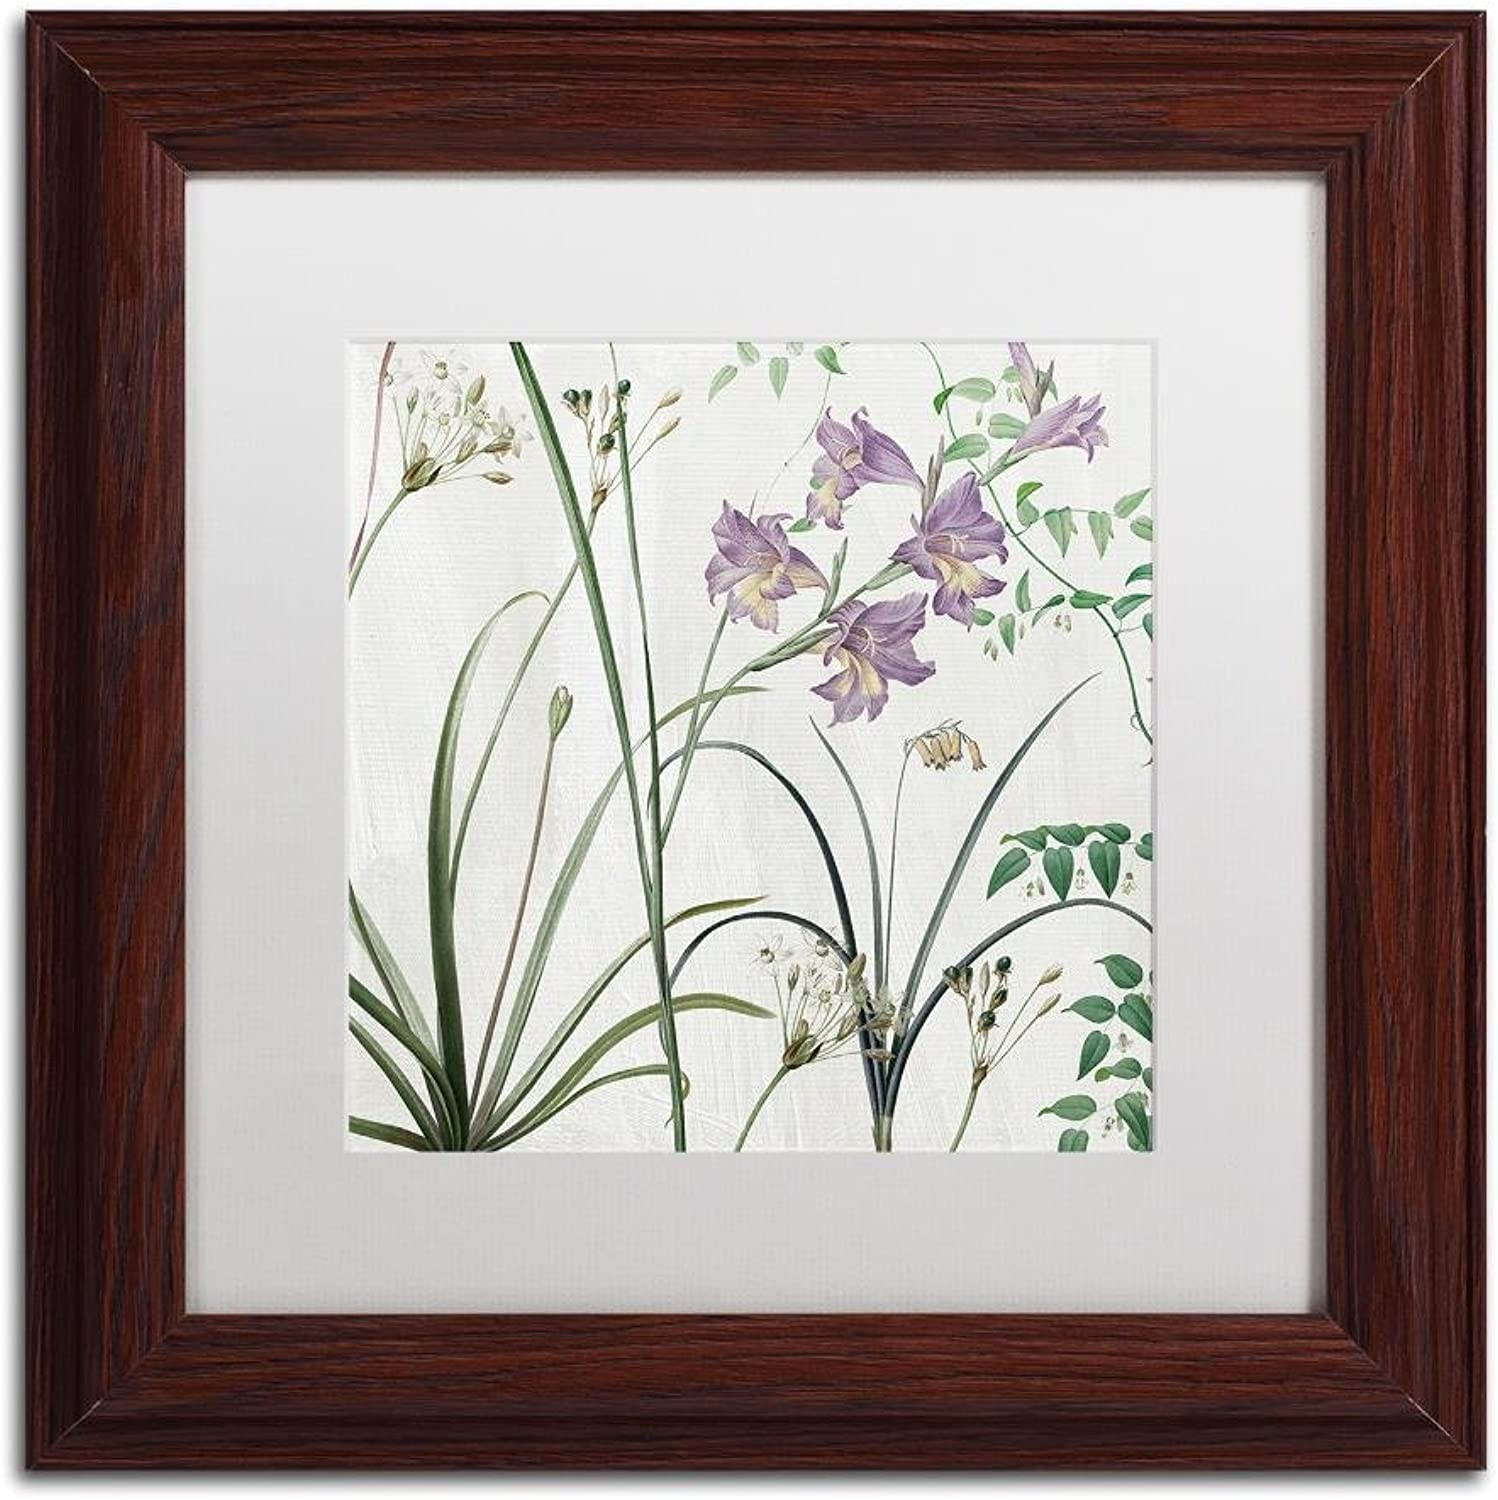 Trademark Fine Art Softly III by color Bakery, White Matte, Wood Frame 11x11